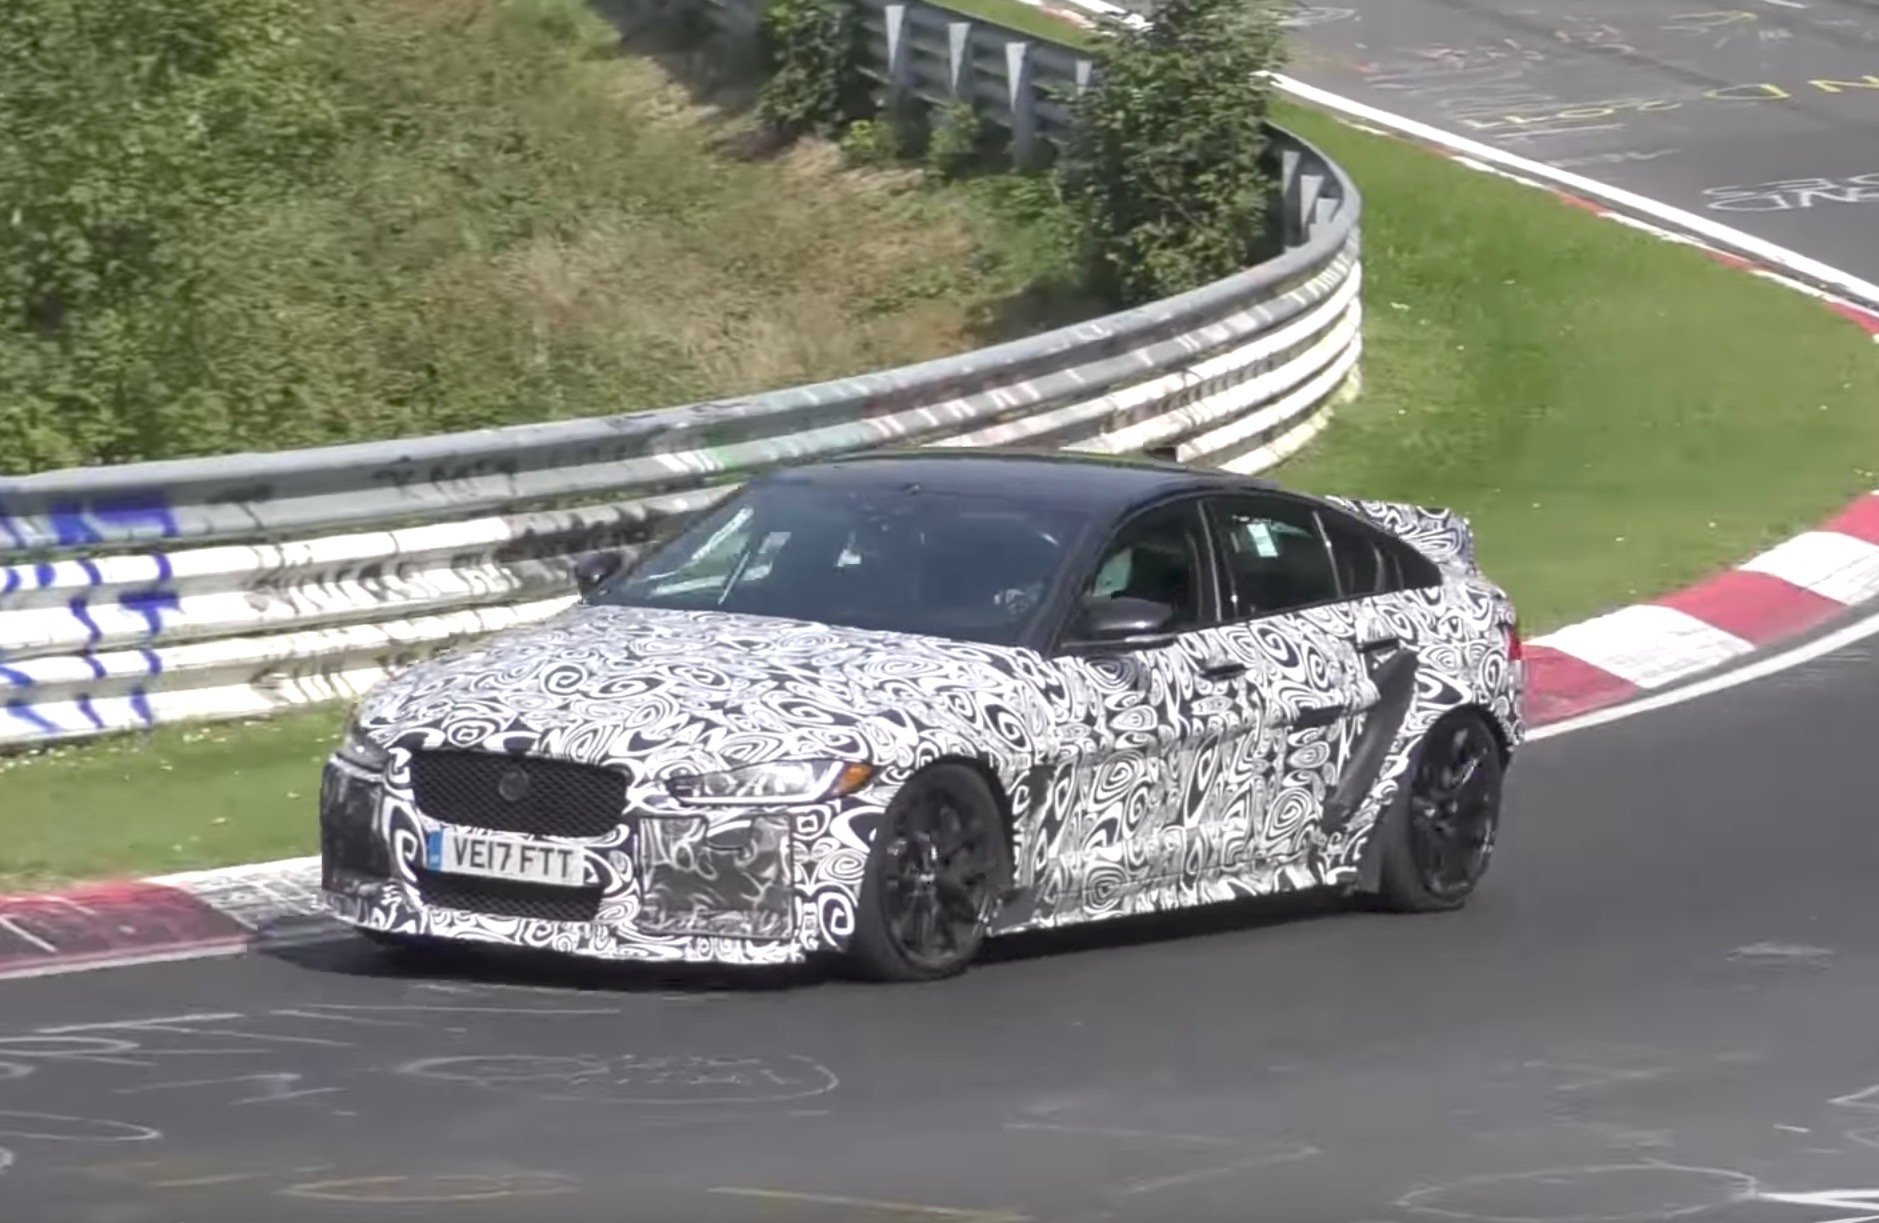 Jaguar Has Been Spotted Out And About On The Nurburgring Thrashing A  Prototype Version Of The Almighty Jaguar XE SV Project 8, Potentially  Gunning For A Lap ...